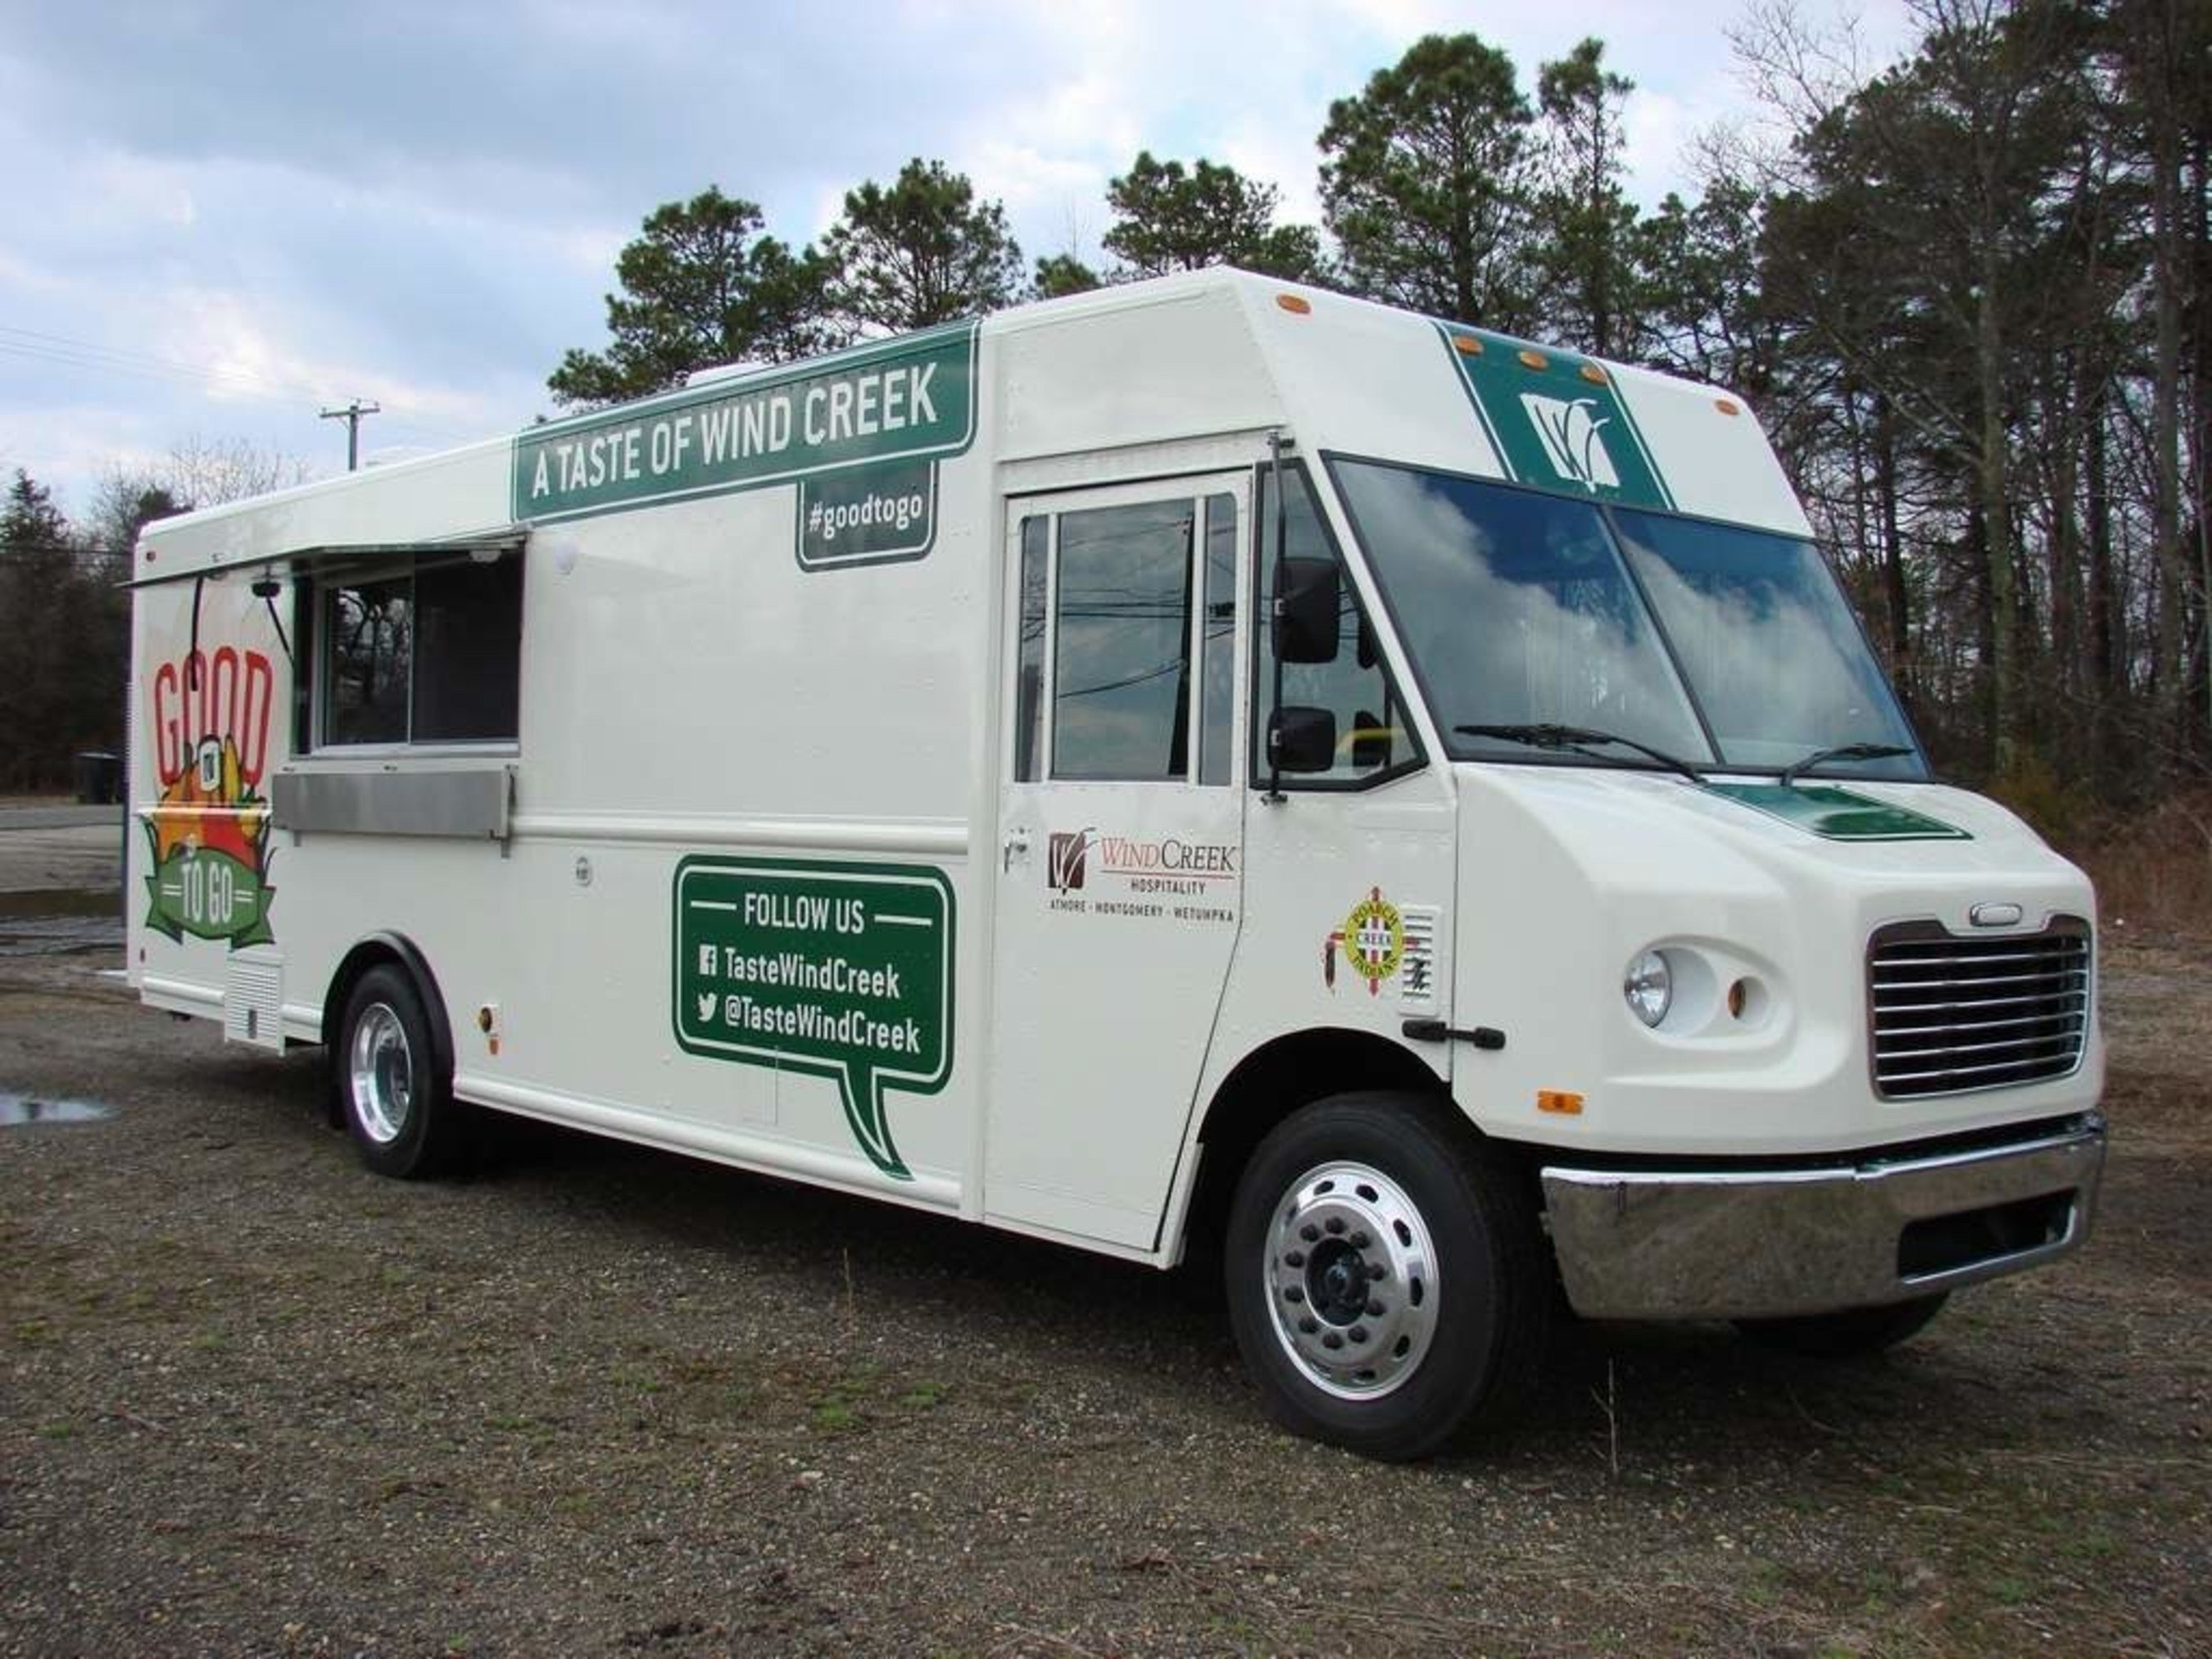 """Wind Creek Hospitality """"Good to Go"""" Food Truck travels the region serving the community."""